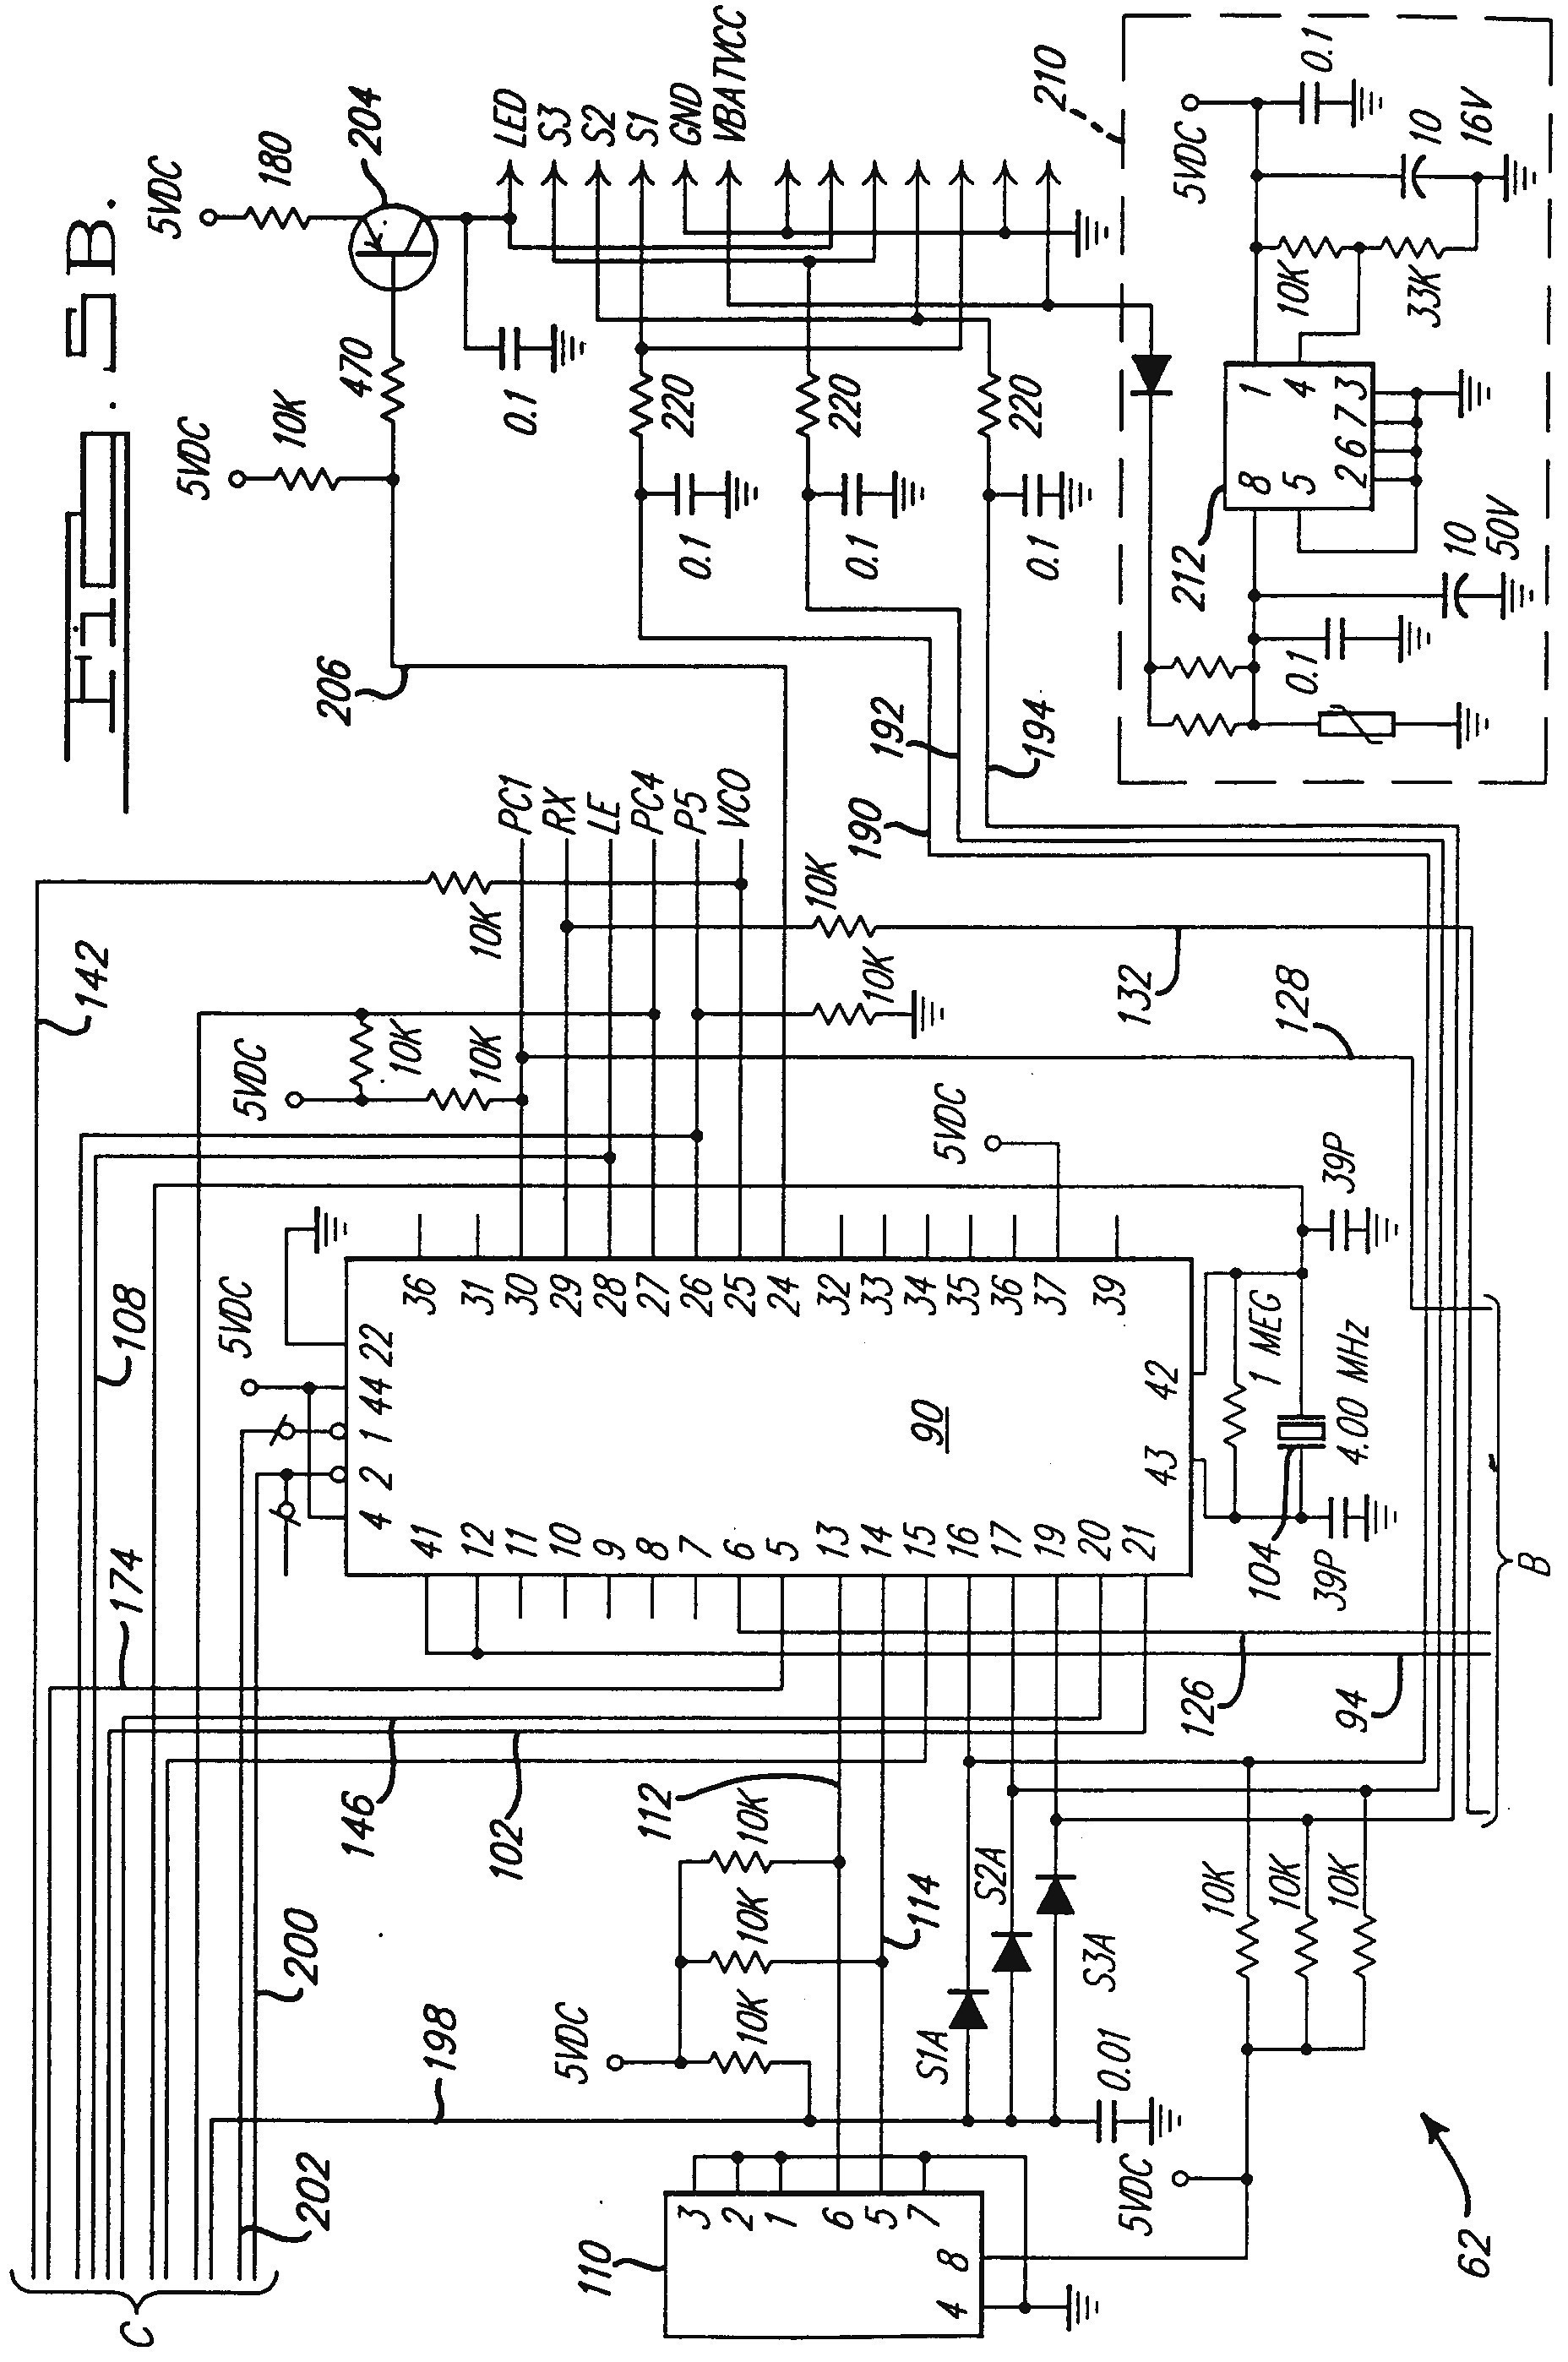 lift master commercial door wiring diagram wiring schematic diagram Lift Master Sensors Wiring-Diagram commercial door opener wiring diagram best wiring library garage door wiring schematic commercial door opener wiring